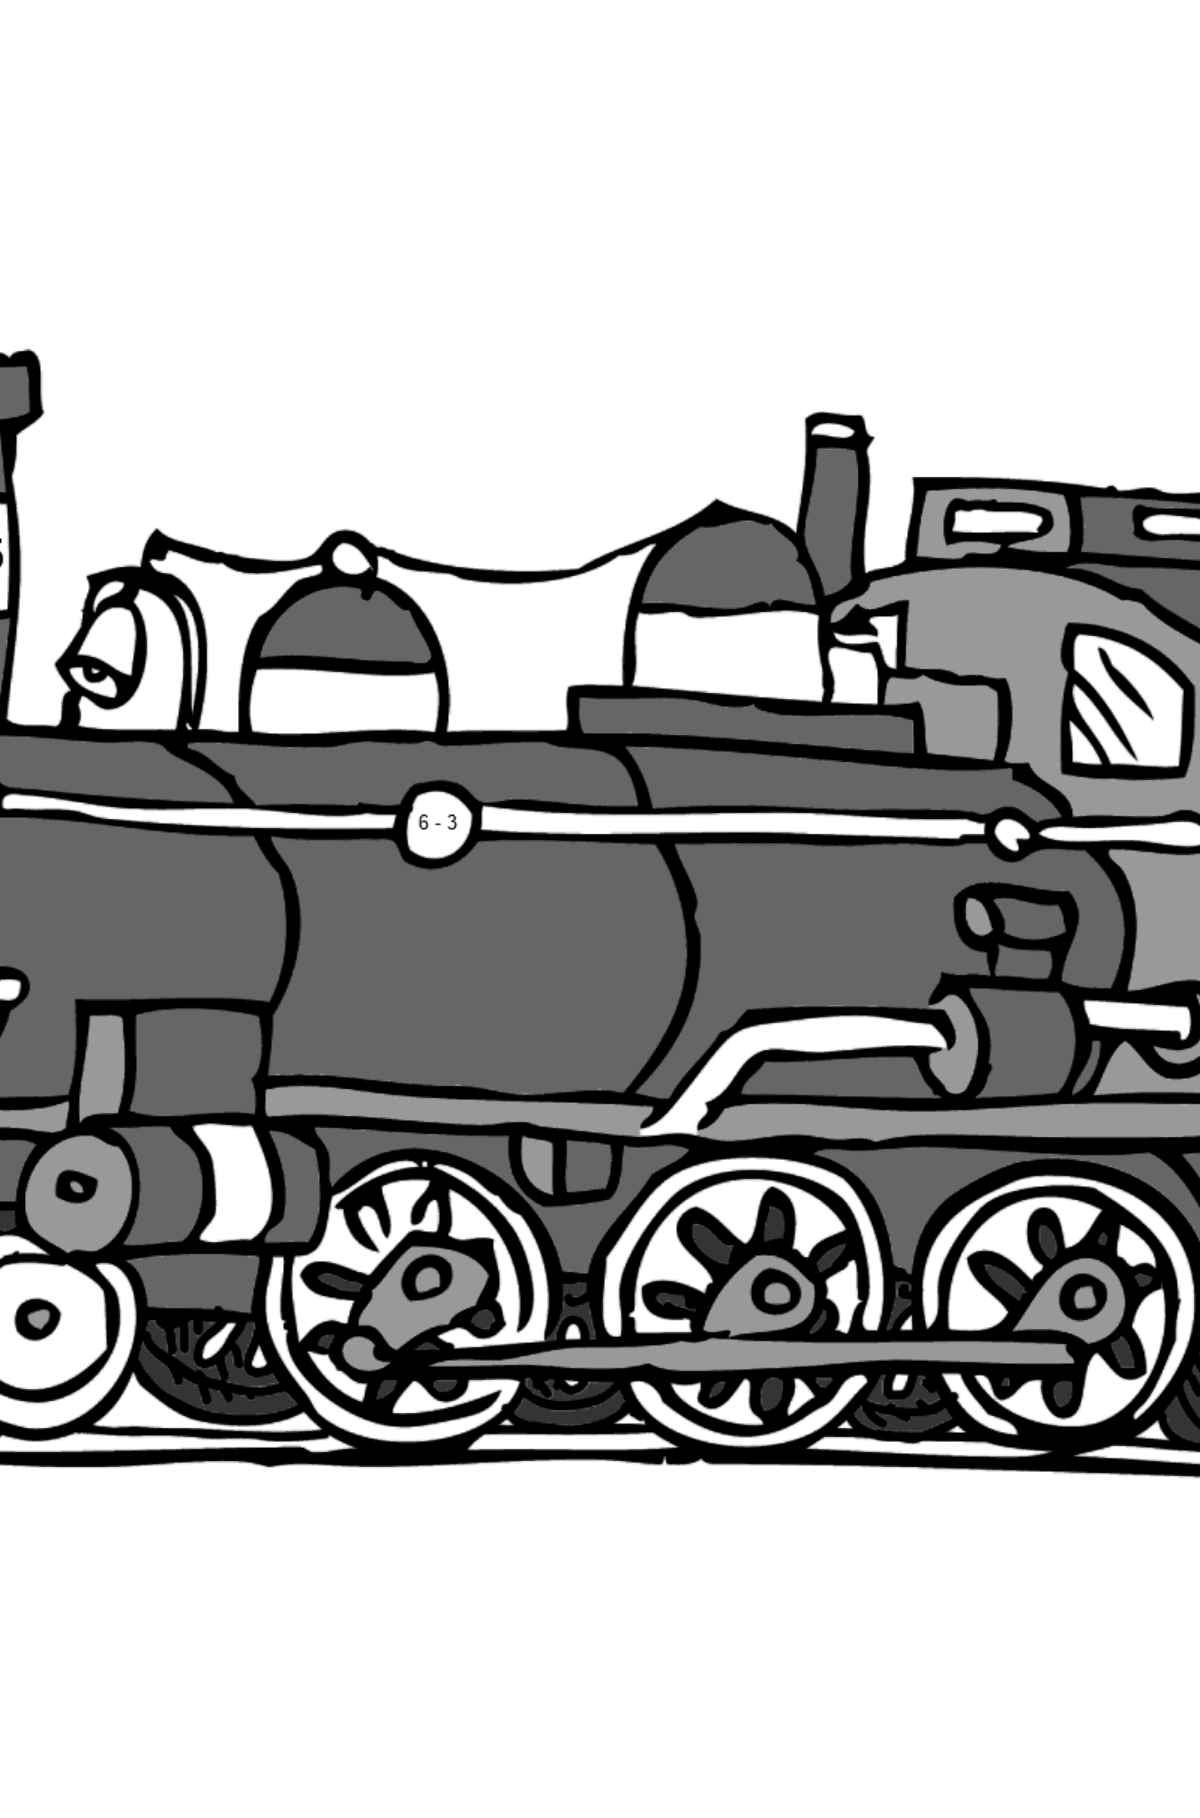 Coloring Page - A Locomotive - Math Coloring - Subtraction for Kids